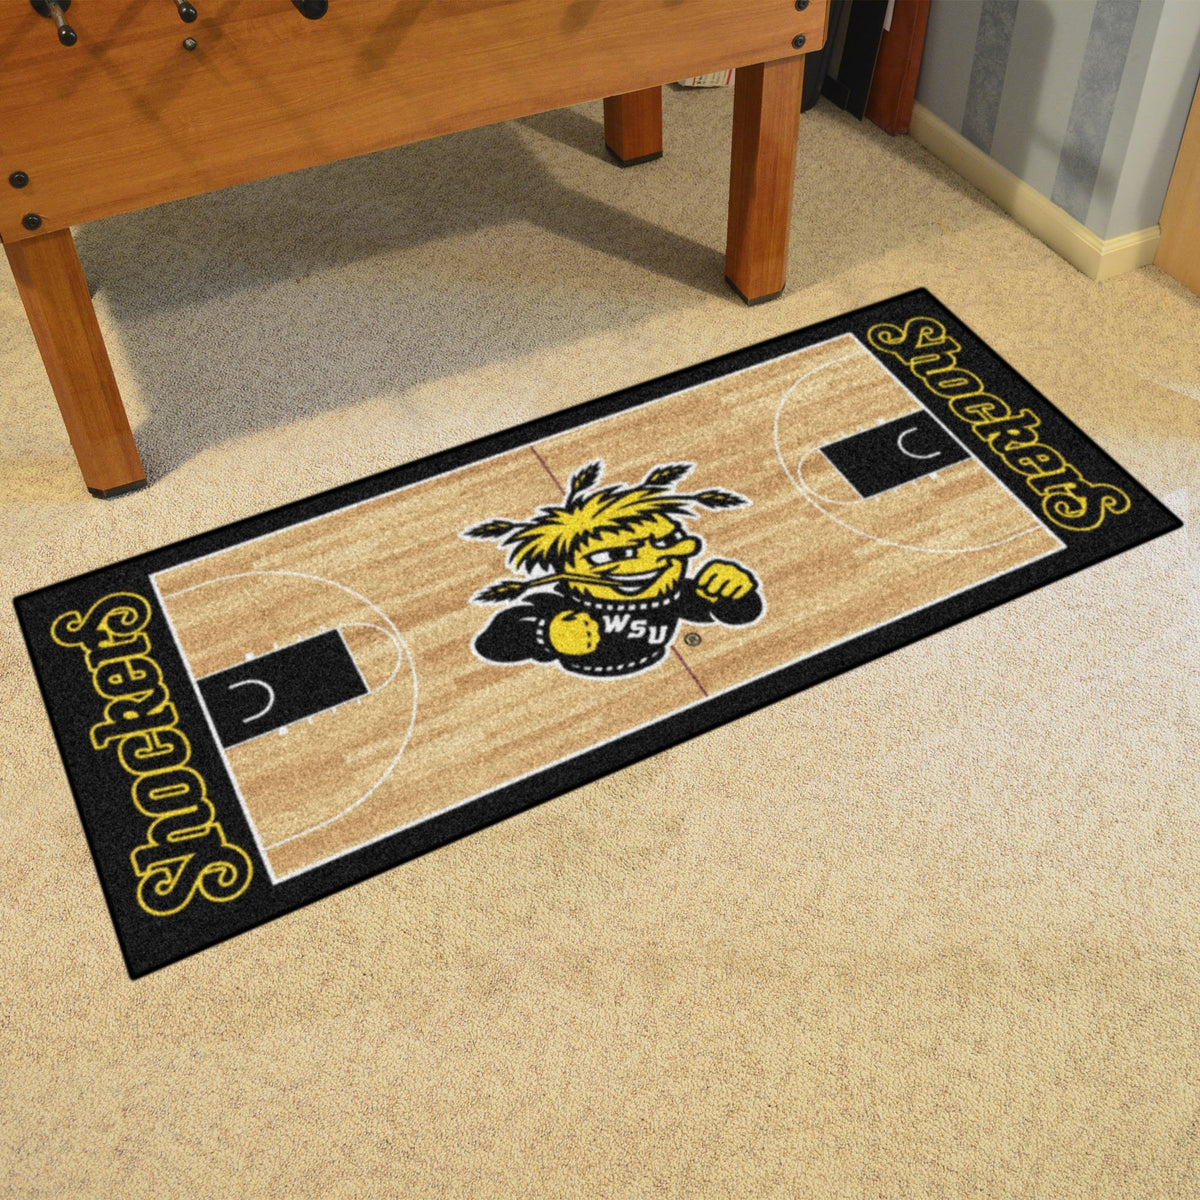 Collegiate - NCAA Basketball Runner Collegiate Mats, Rectangular Mats, NCAA Basketball Runner, Collegiate, Home Fan Mats Wichita State